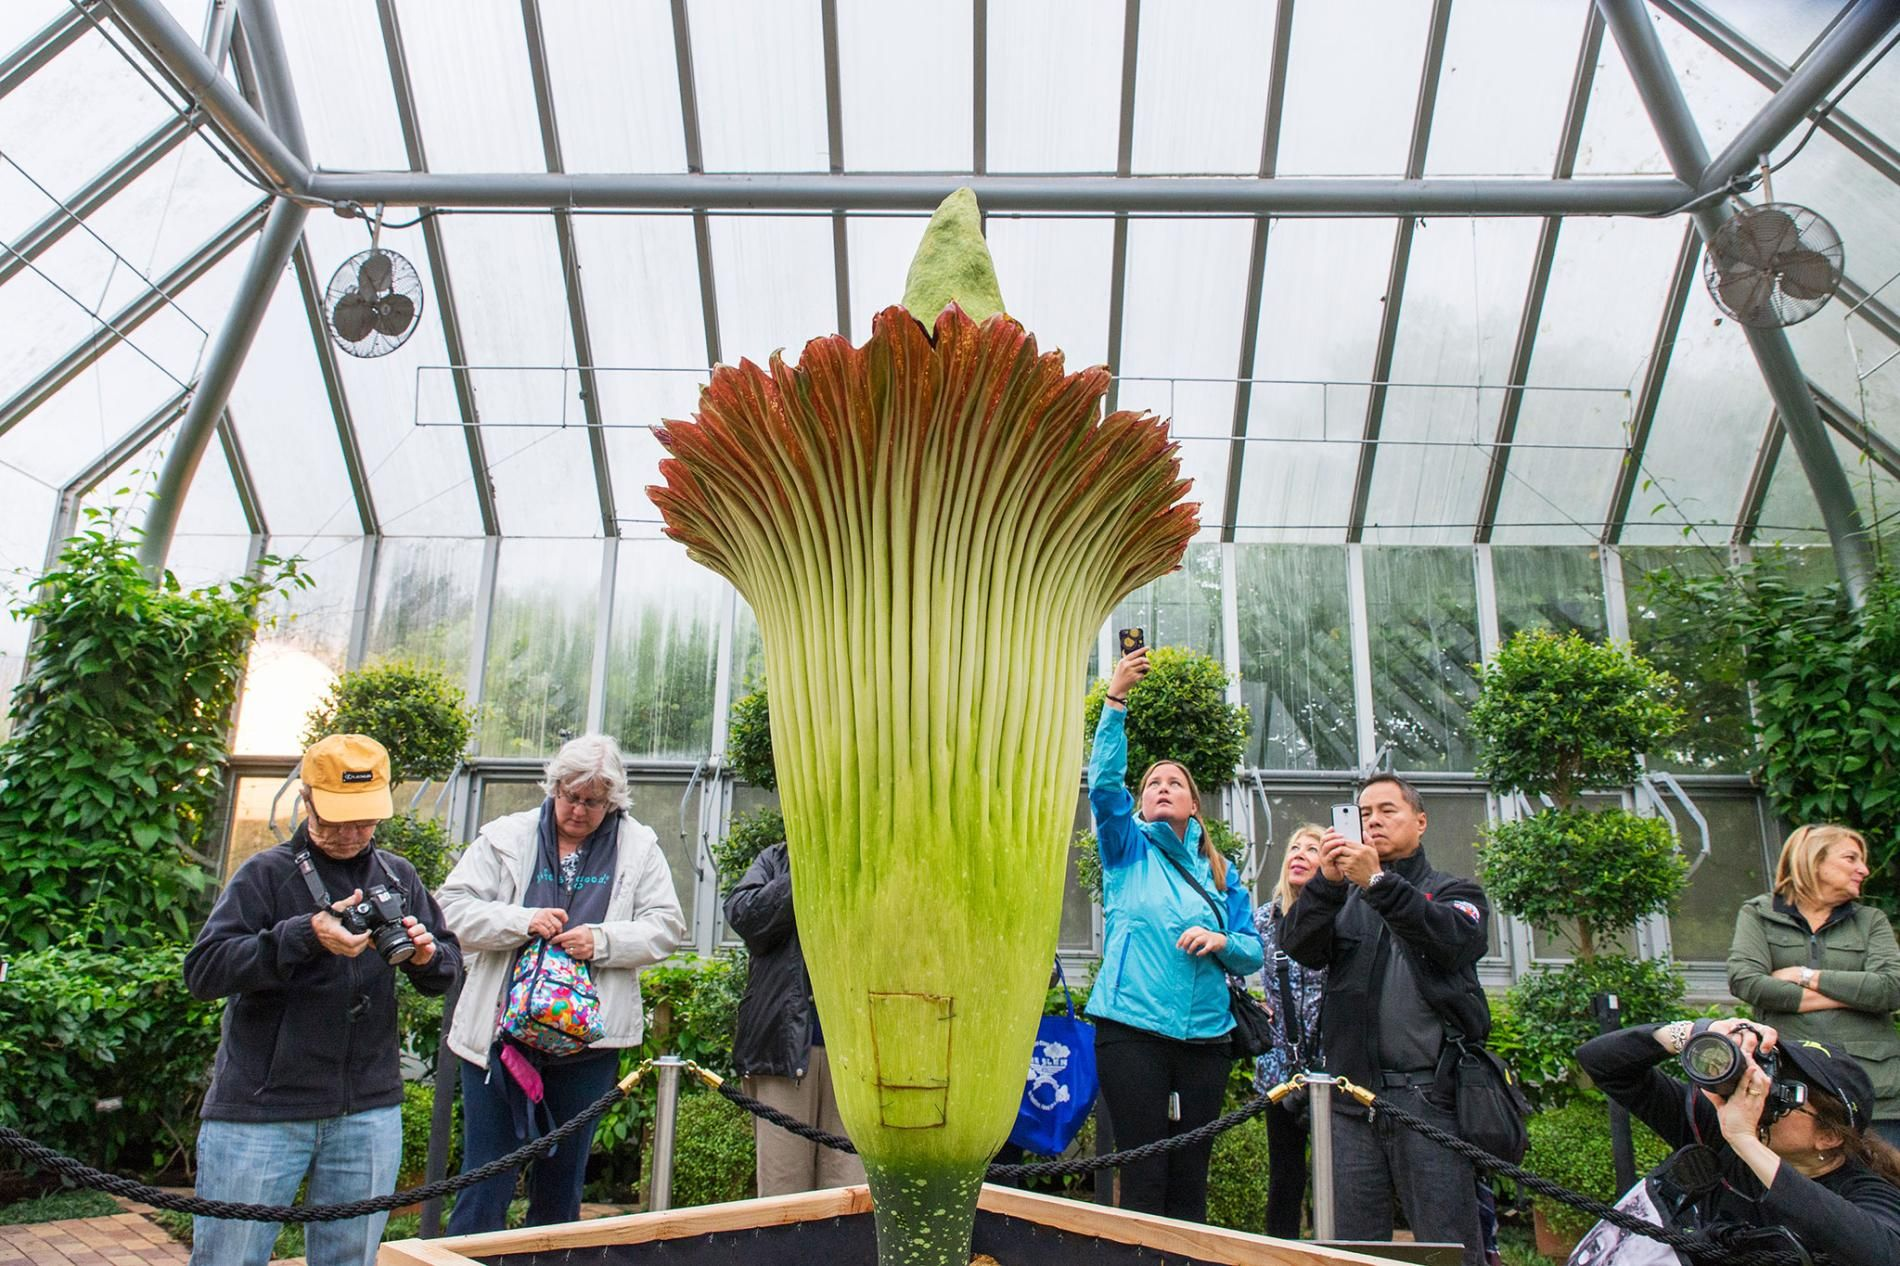 What Makes The Corpse Flower Stink So Bad Corpse Flower Bloom Corpse Flower Chicago Botanic Garden